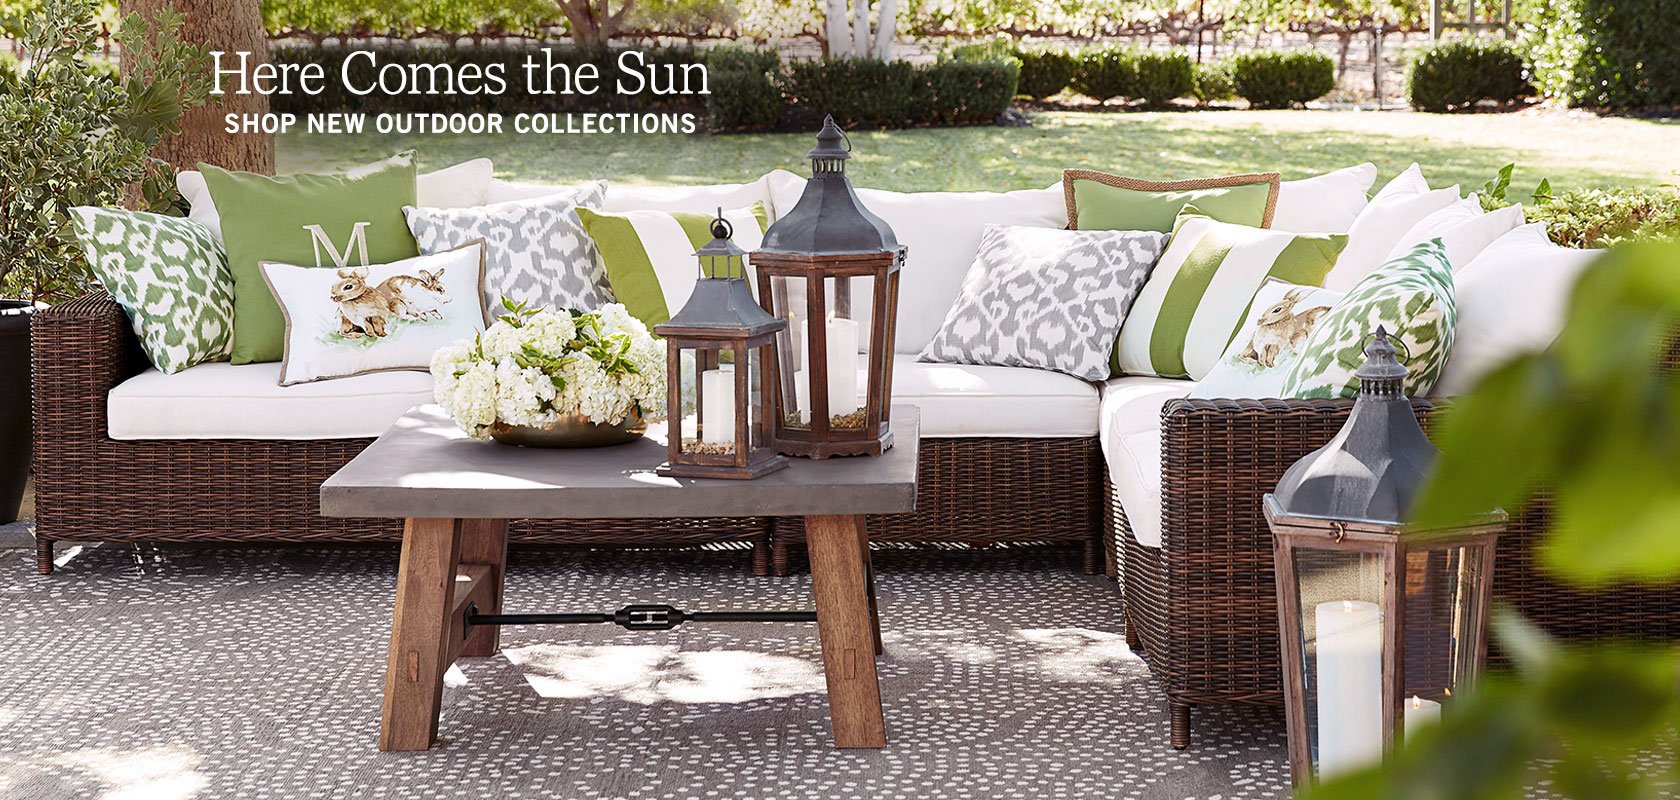 Home Furnishings Home Decor Outdoor Furniture Modern Furniture Pottery Barn